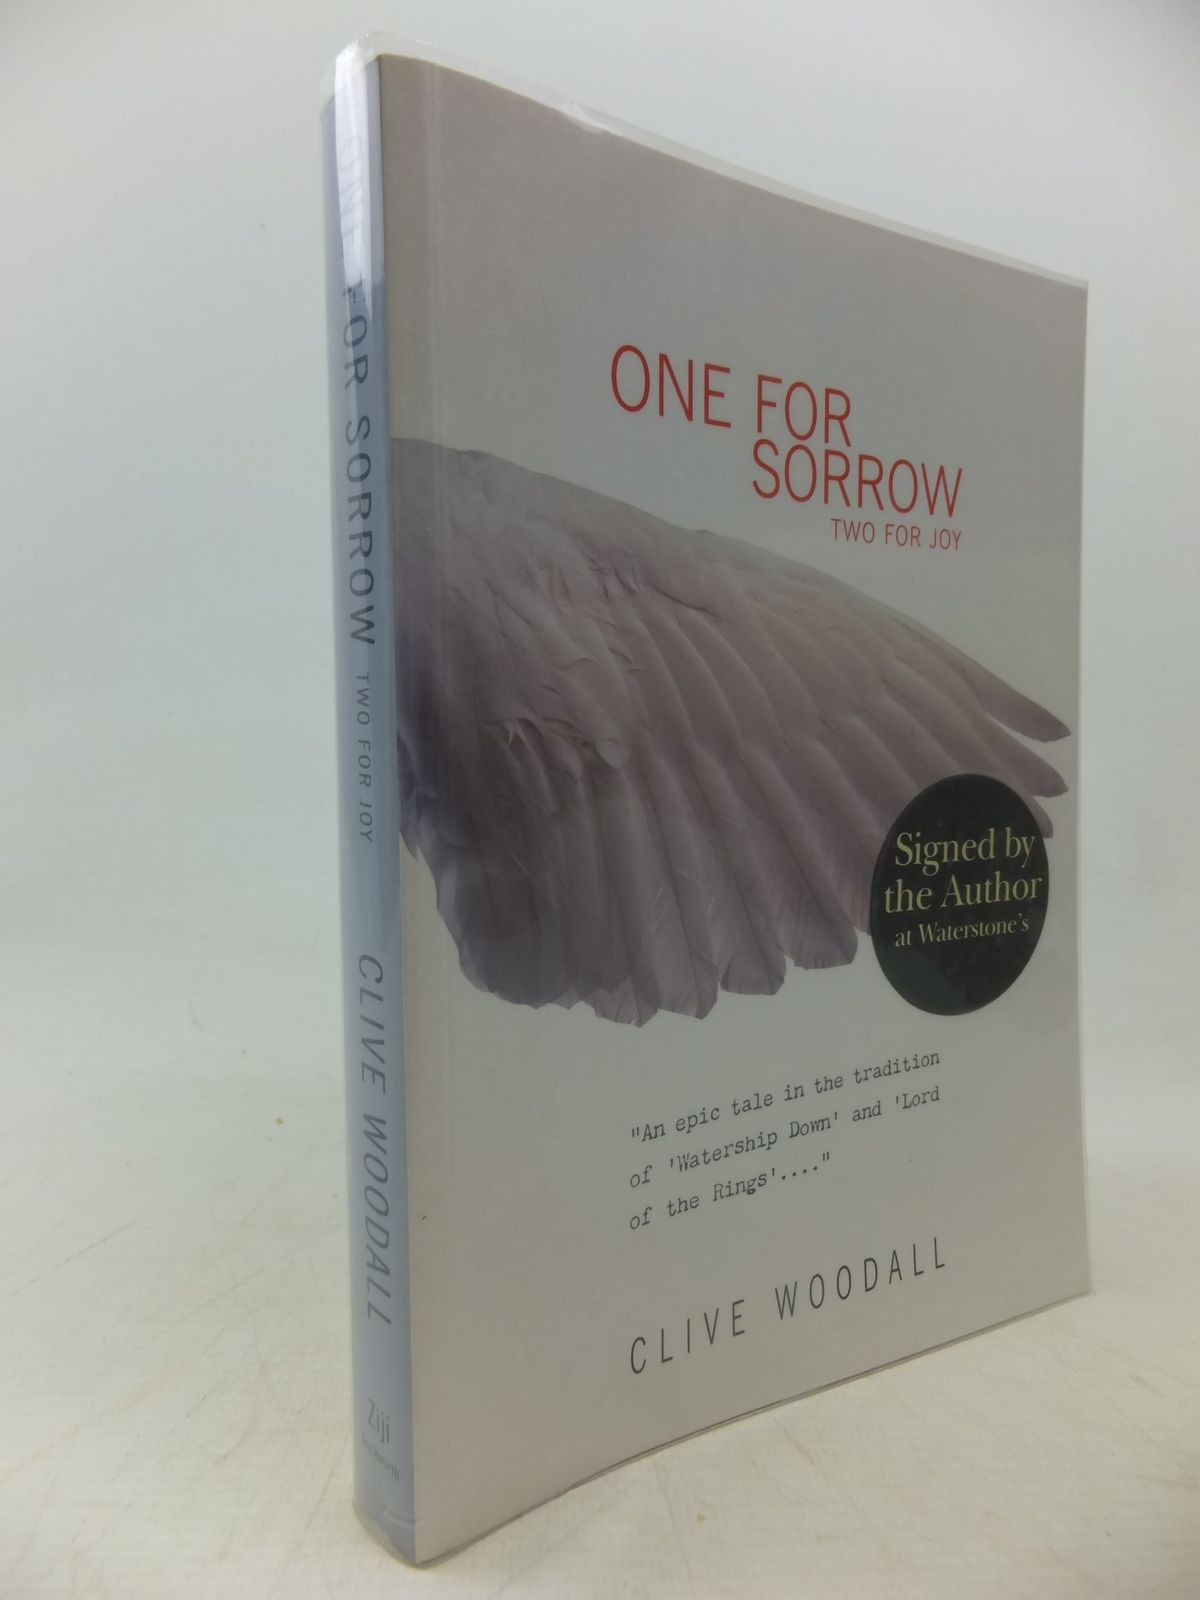 Photo of ONE FOR SORROW TWO FOR JOY written by Woodall, Clive published by Duckworth (STOCK CODE: 1109165)  for sale by Stella & Rose's Books